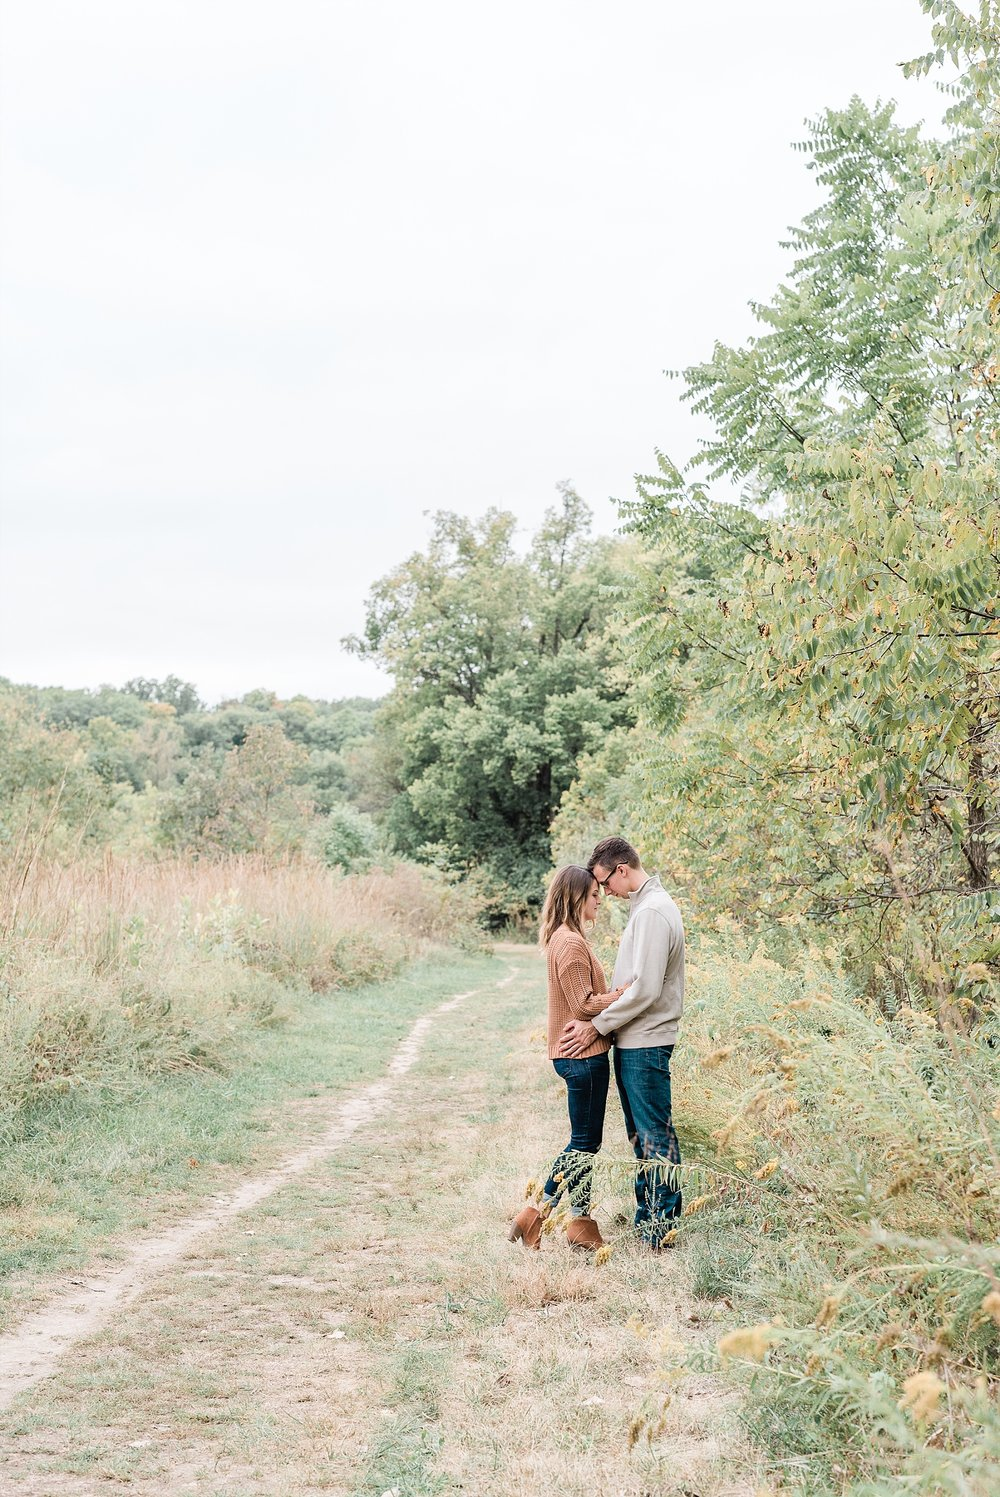 Autumn Engagement Session at Grindstone Nature Trail Columbia Missouri by Kelsi Kliethermes Photography_0008.jpg